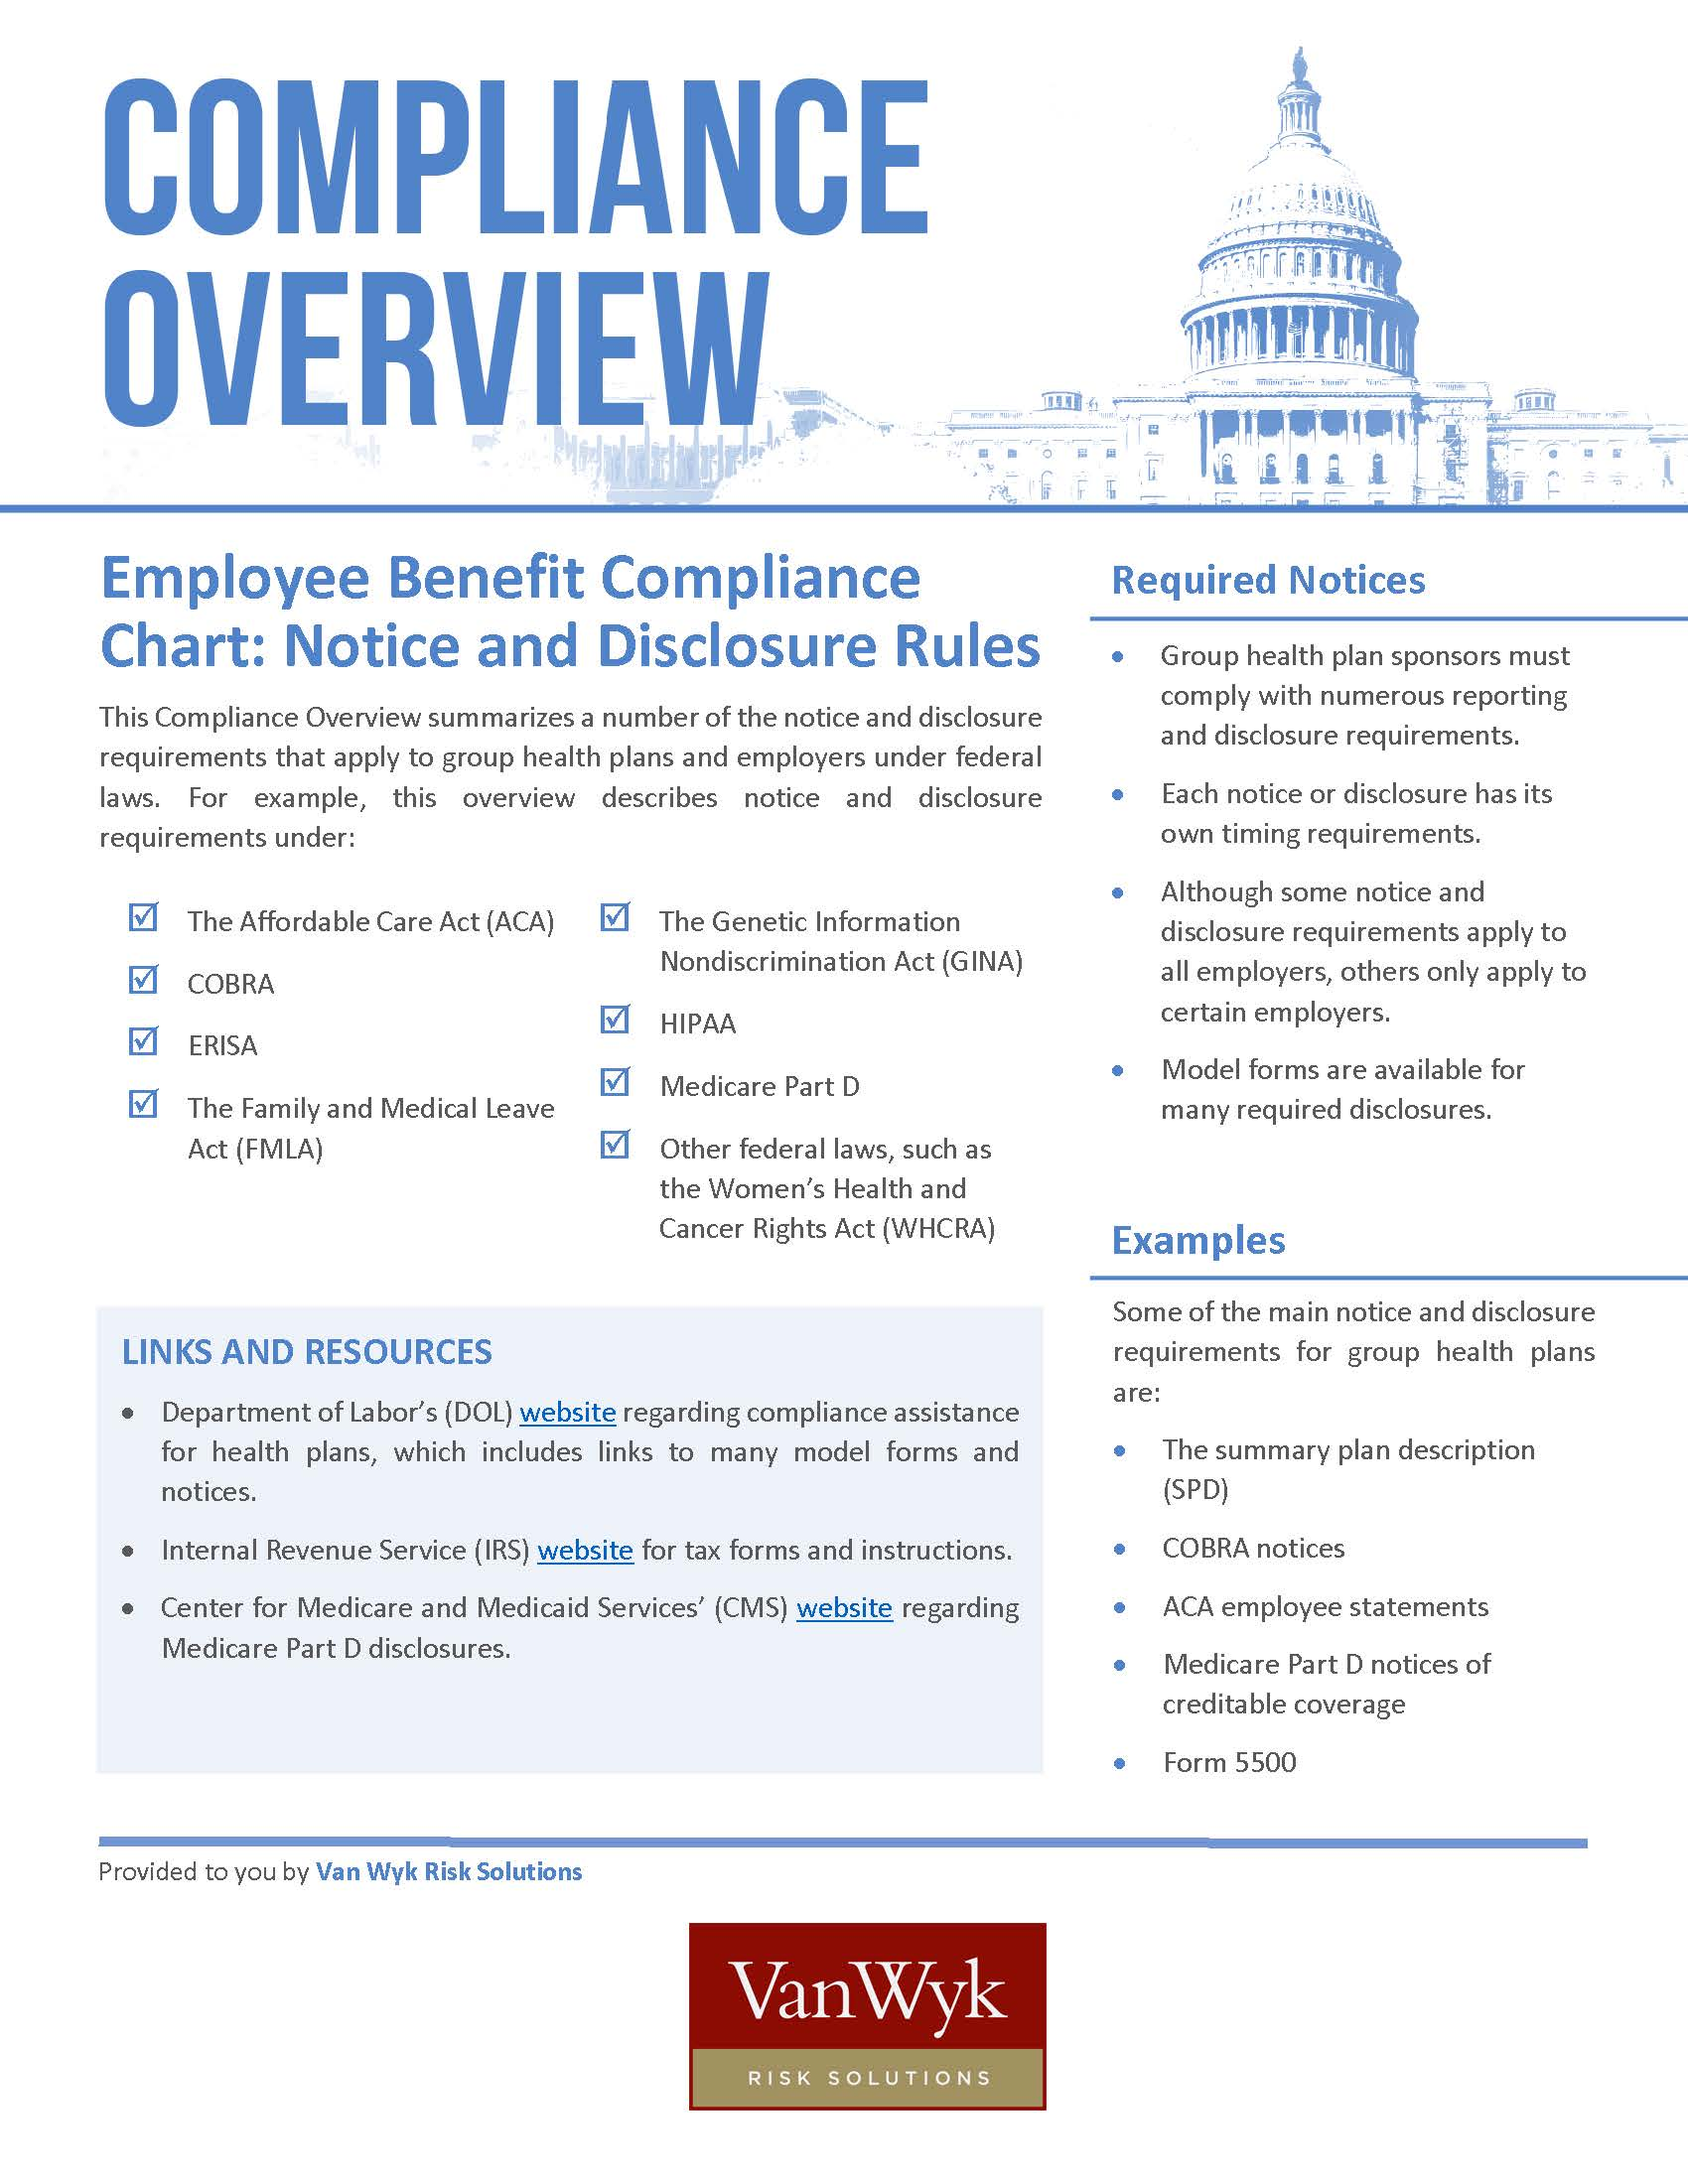 Employee Benefit Compliance Chart: Notice and Disclosure Rules